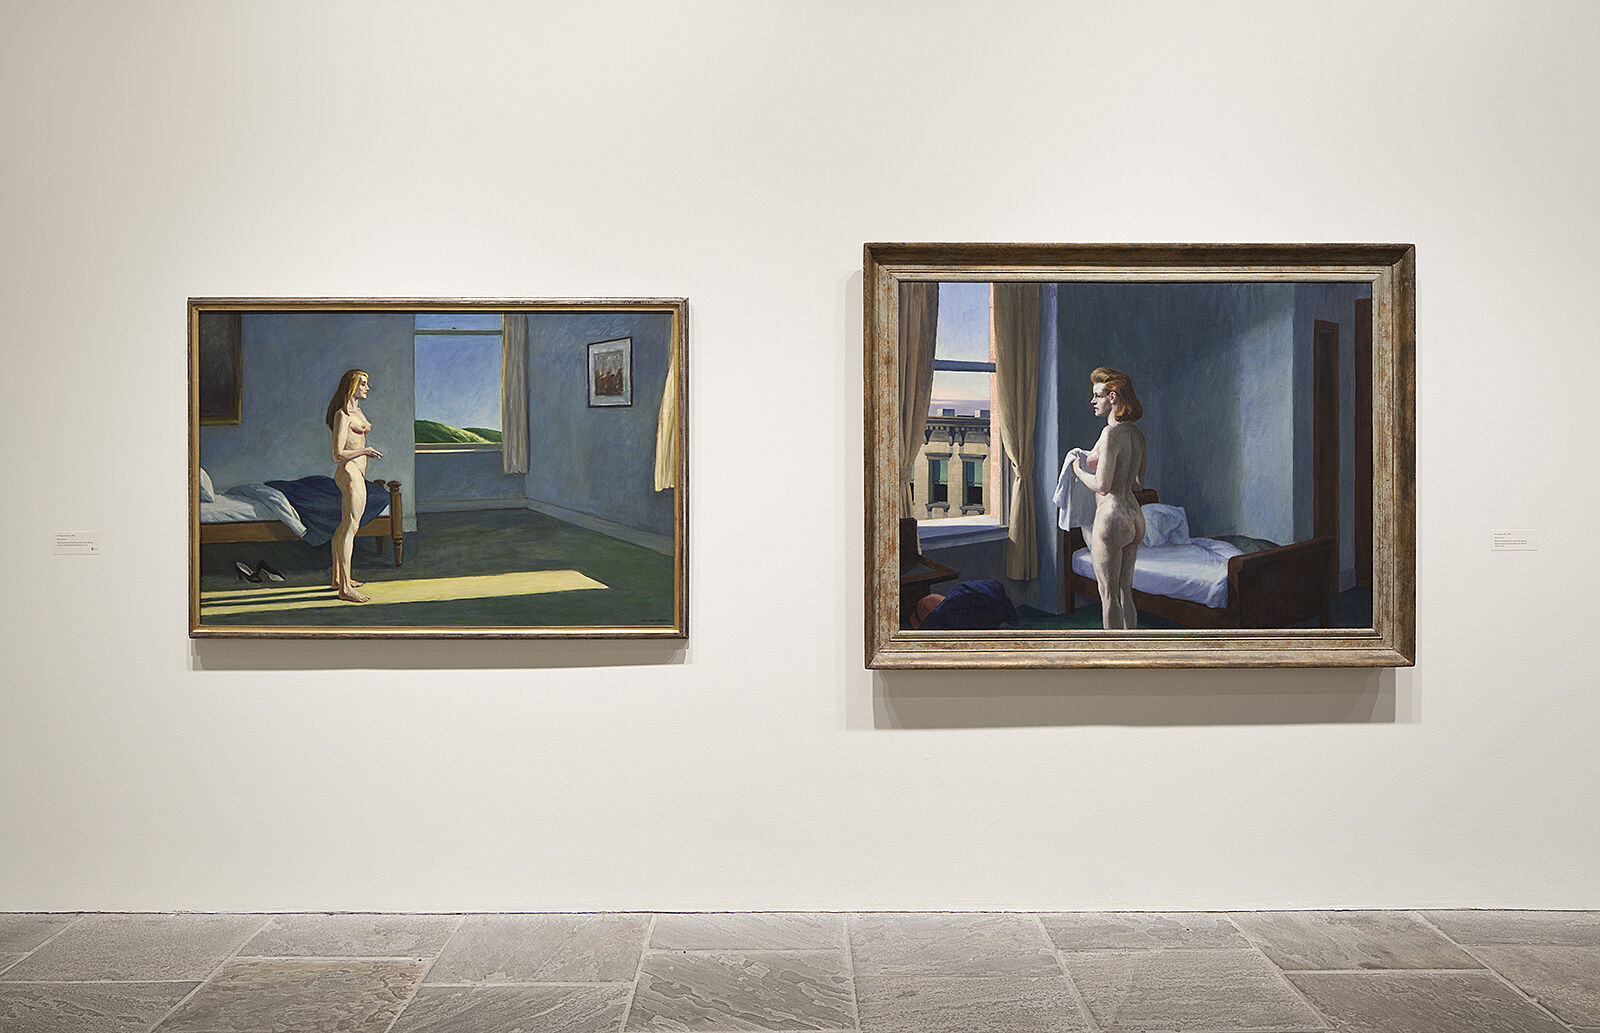 Paintings of nudes hang side by side.